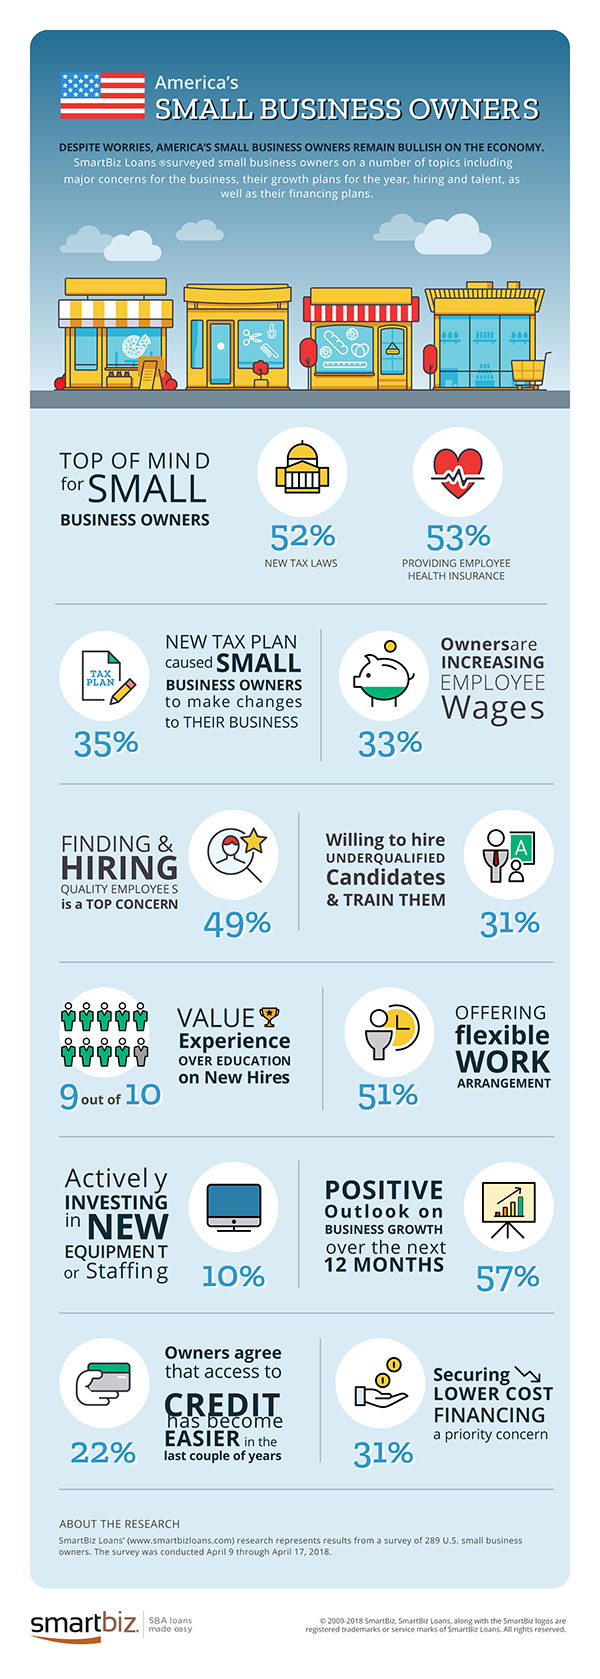 //resources.smartbizloans.com/wp-content/uploads/SmartBiz-Small-Business-Survey-Infographic-Jun18-RGB-blog.jpg